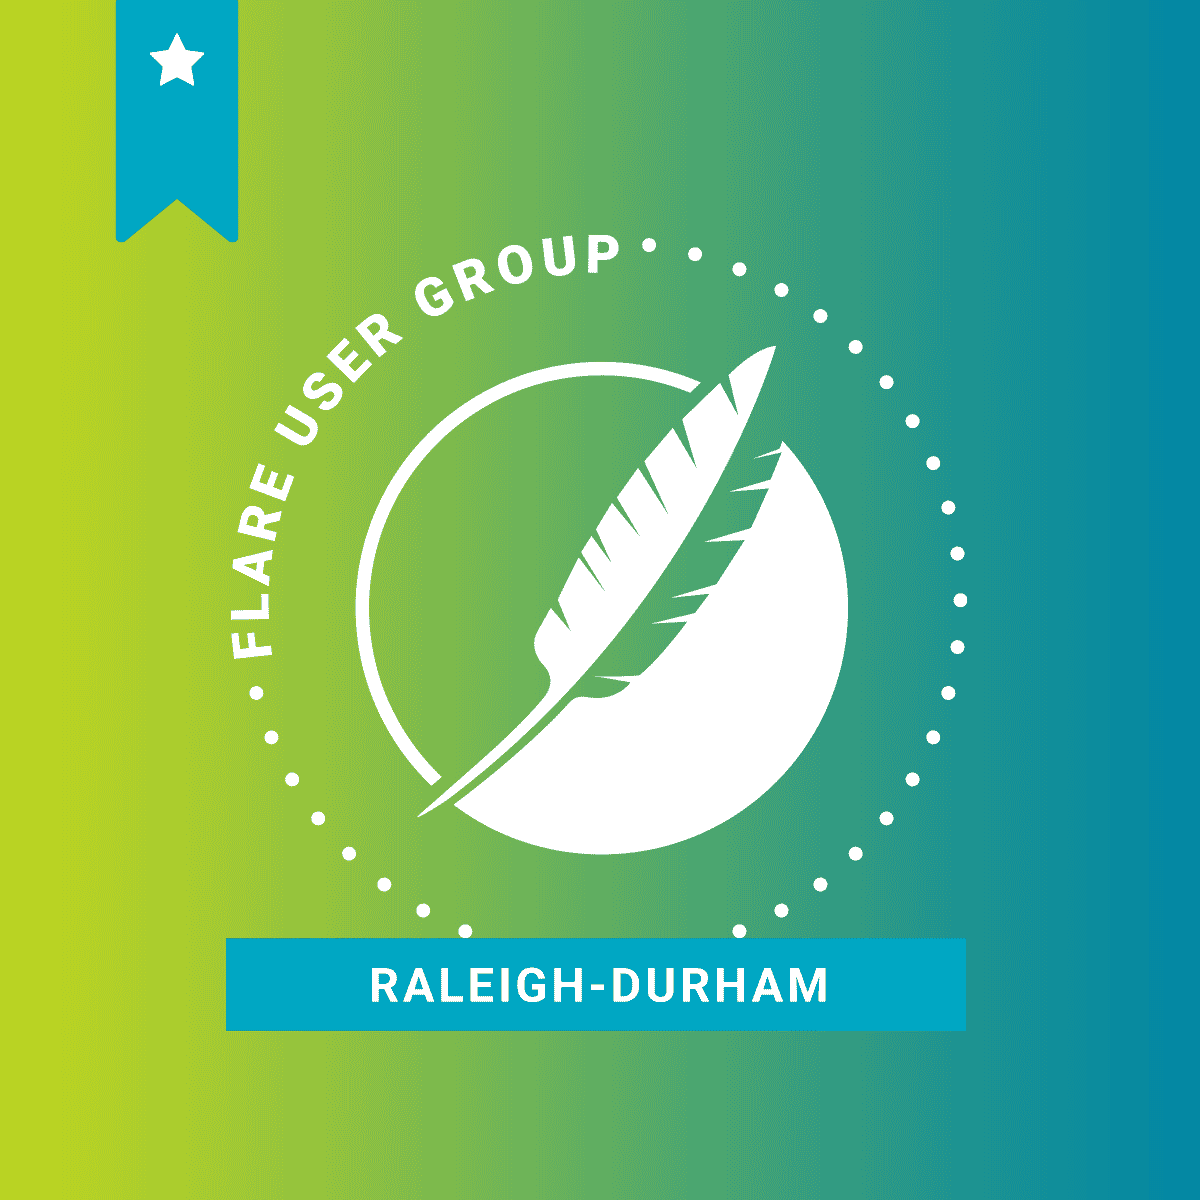 Raleigh-Durham MadCap Flare User Group